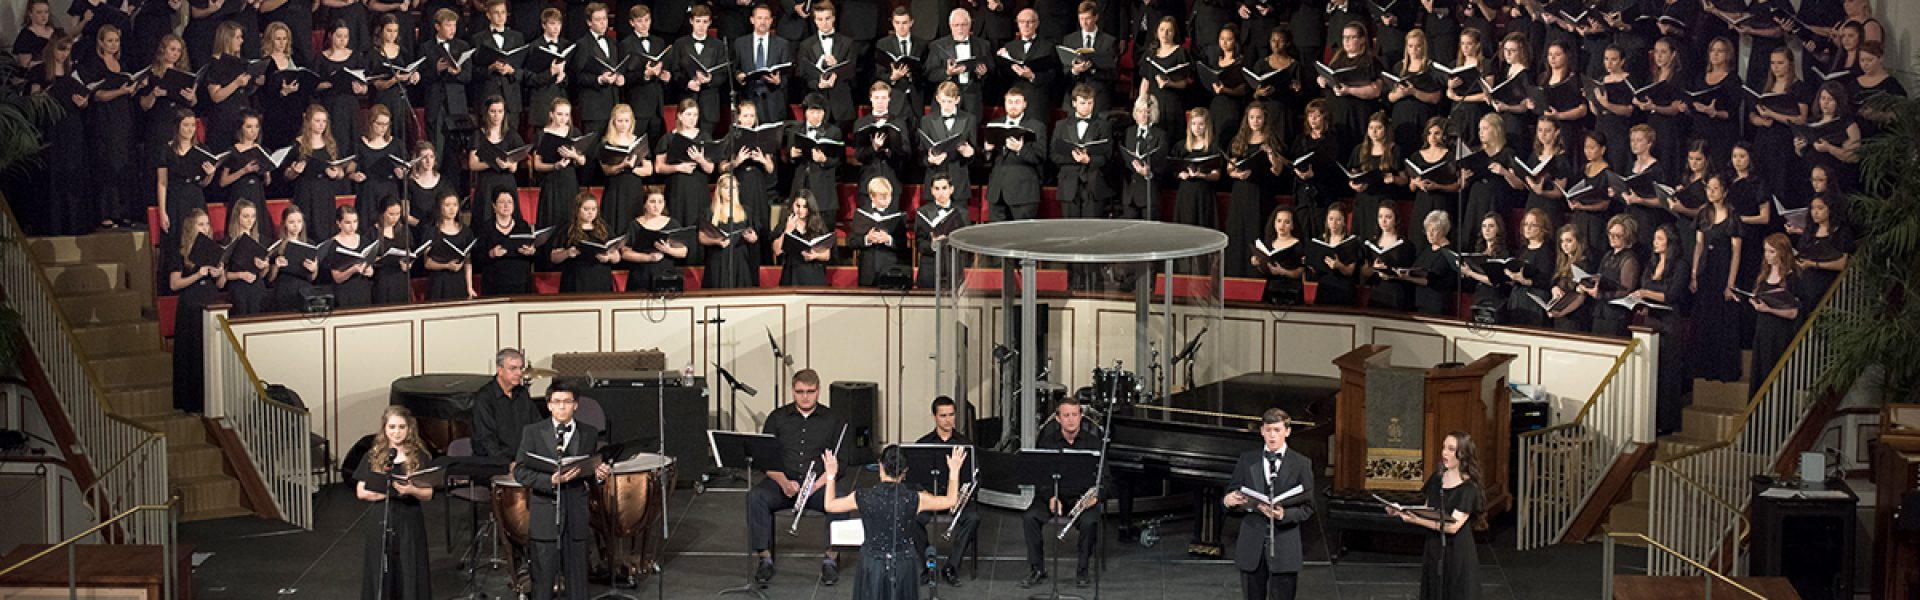 cropped-DSC_3829_Choir-1.jpg